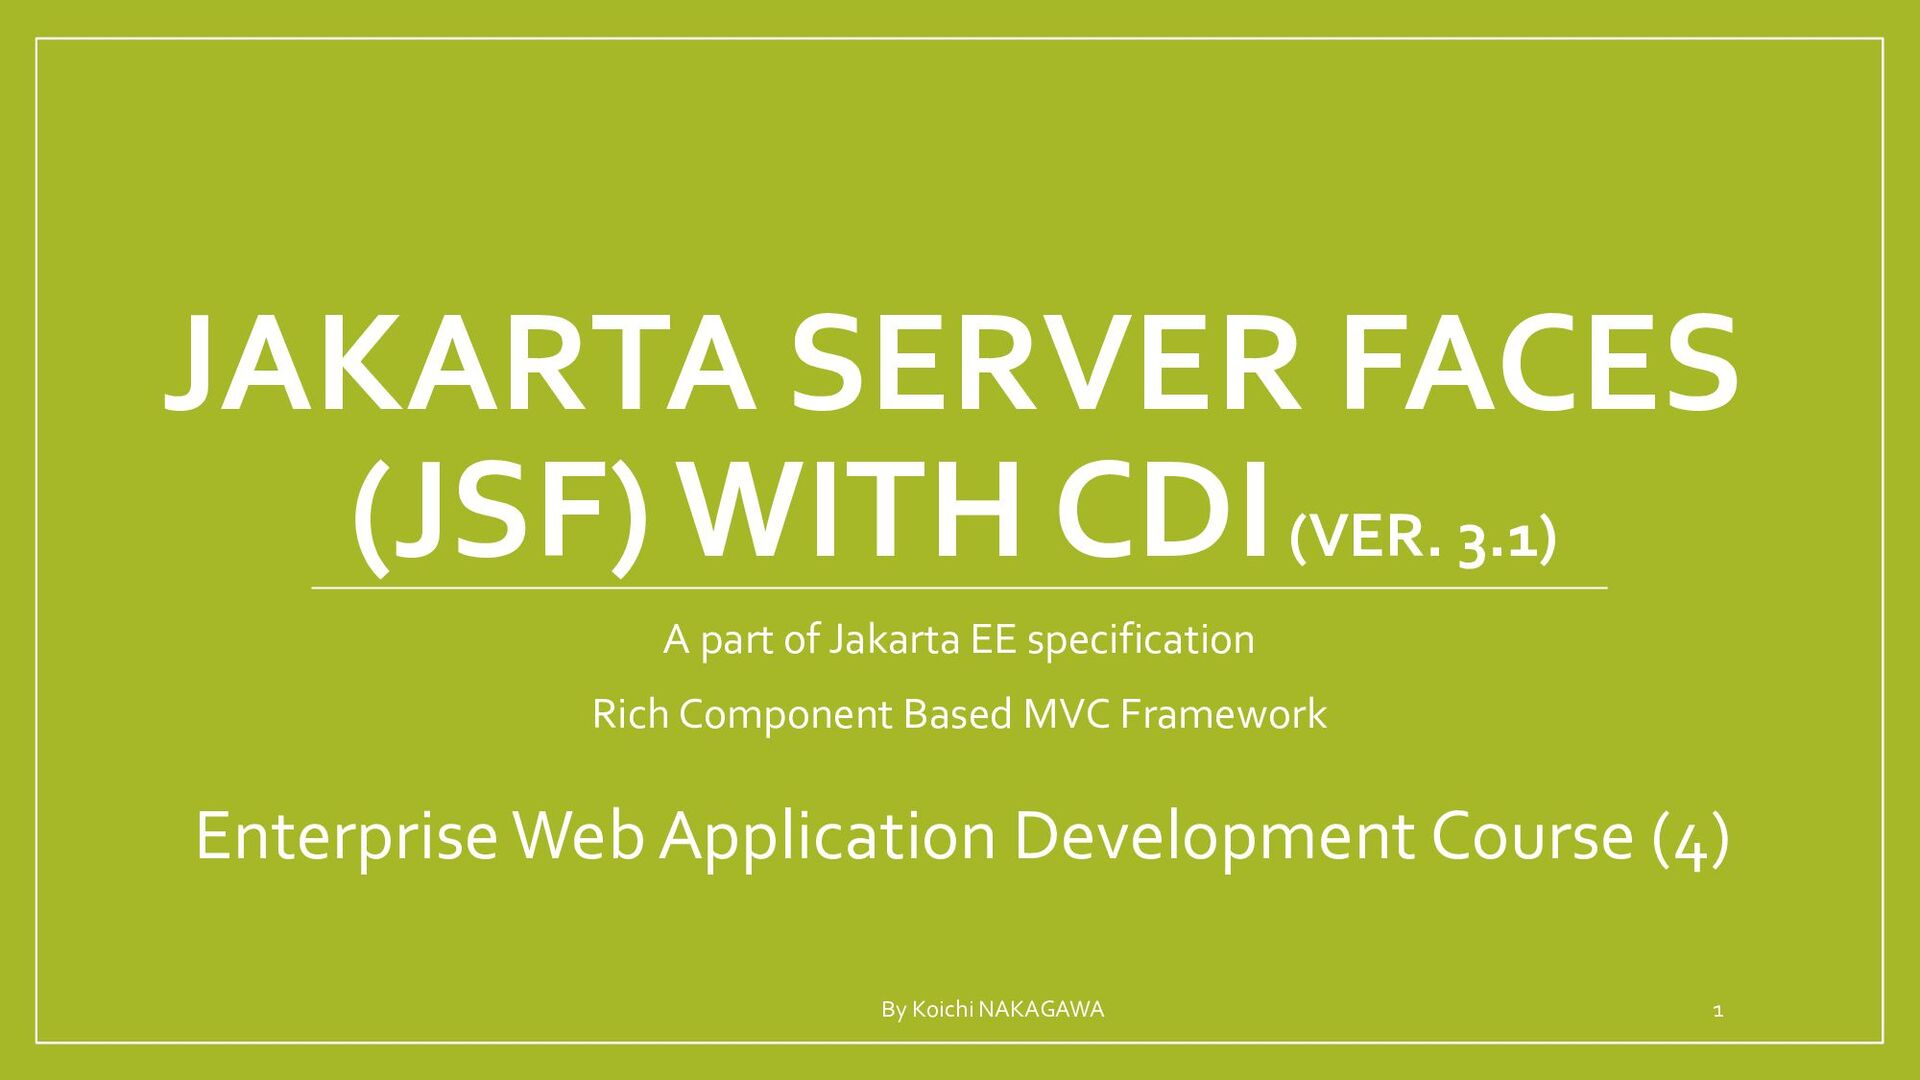 JAKARTA SERVER FACES (JSF) WITH CDI A part of J...